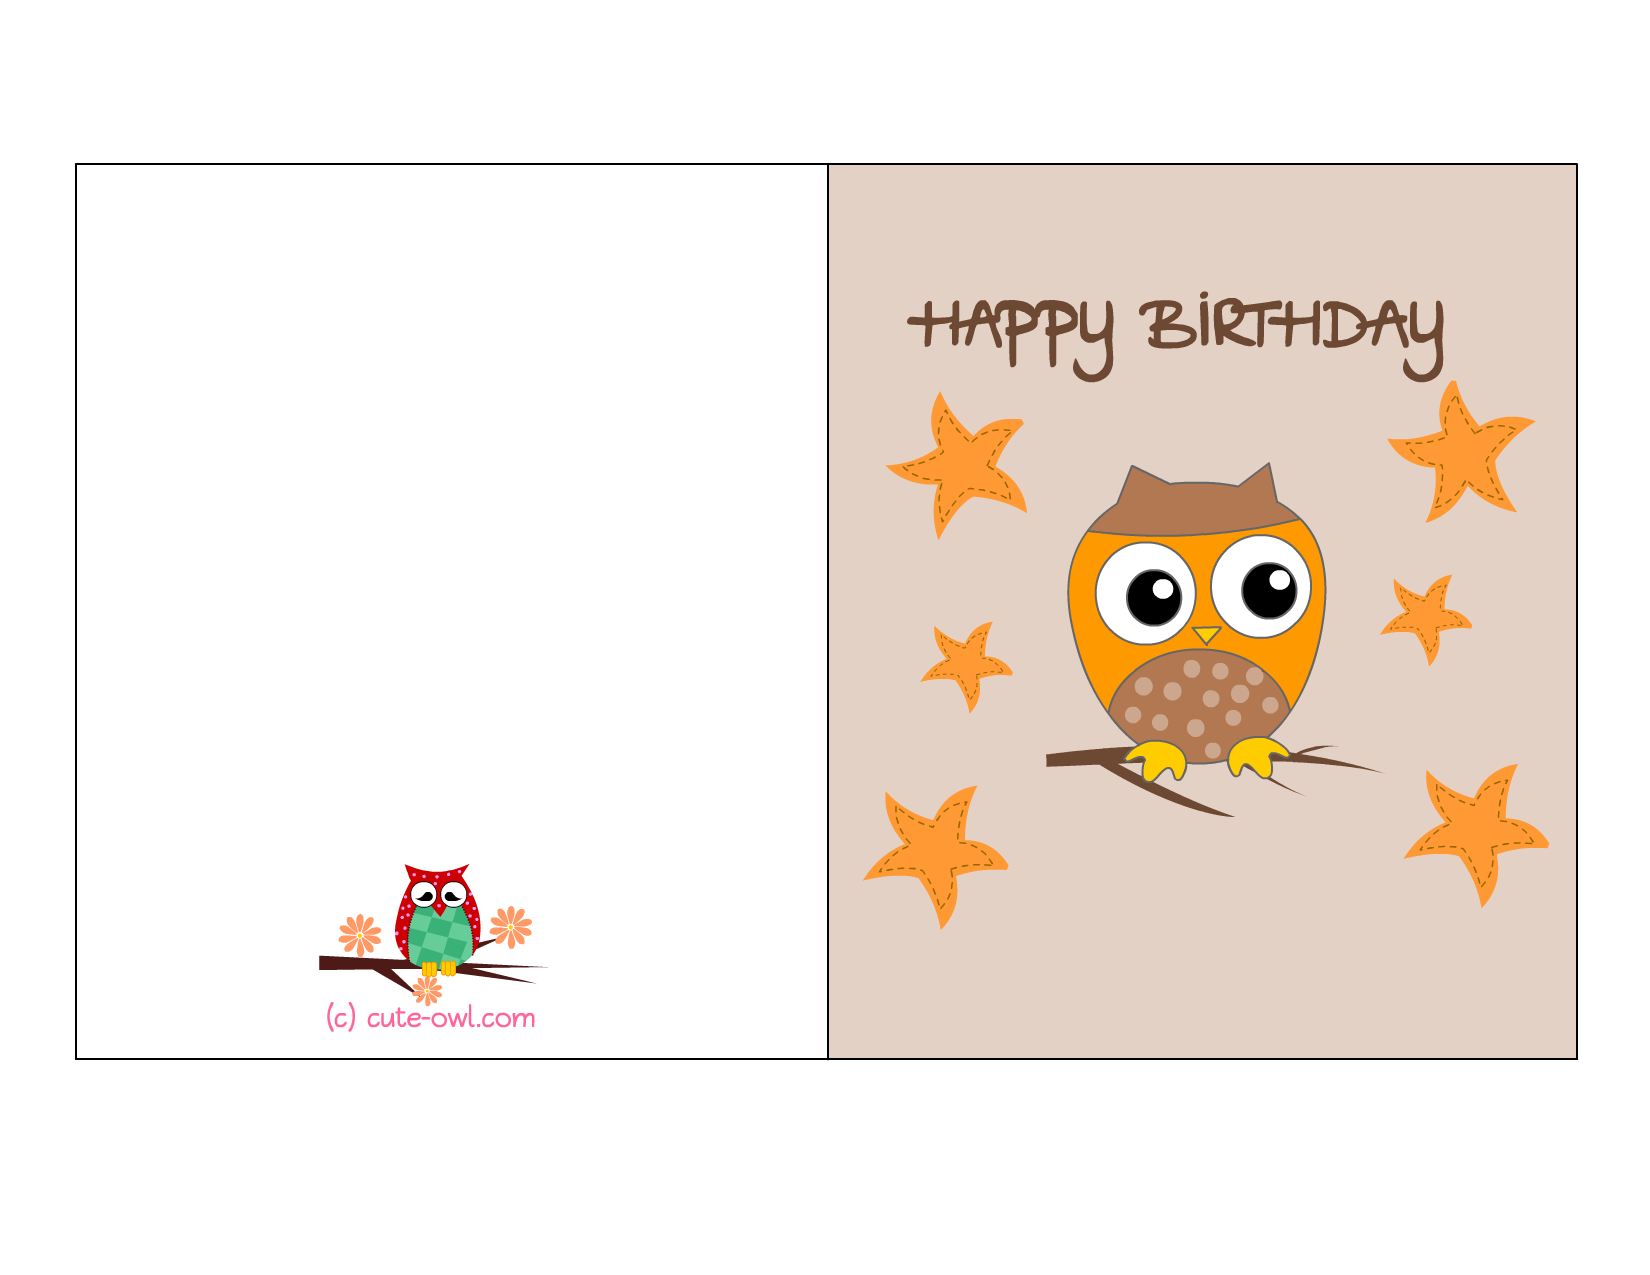 Happy Birthday Cards Printable – Birthday Cards to Print out for Free